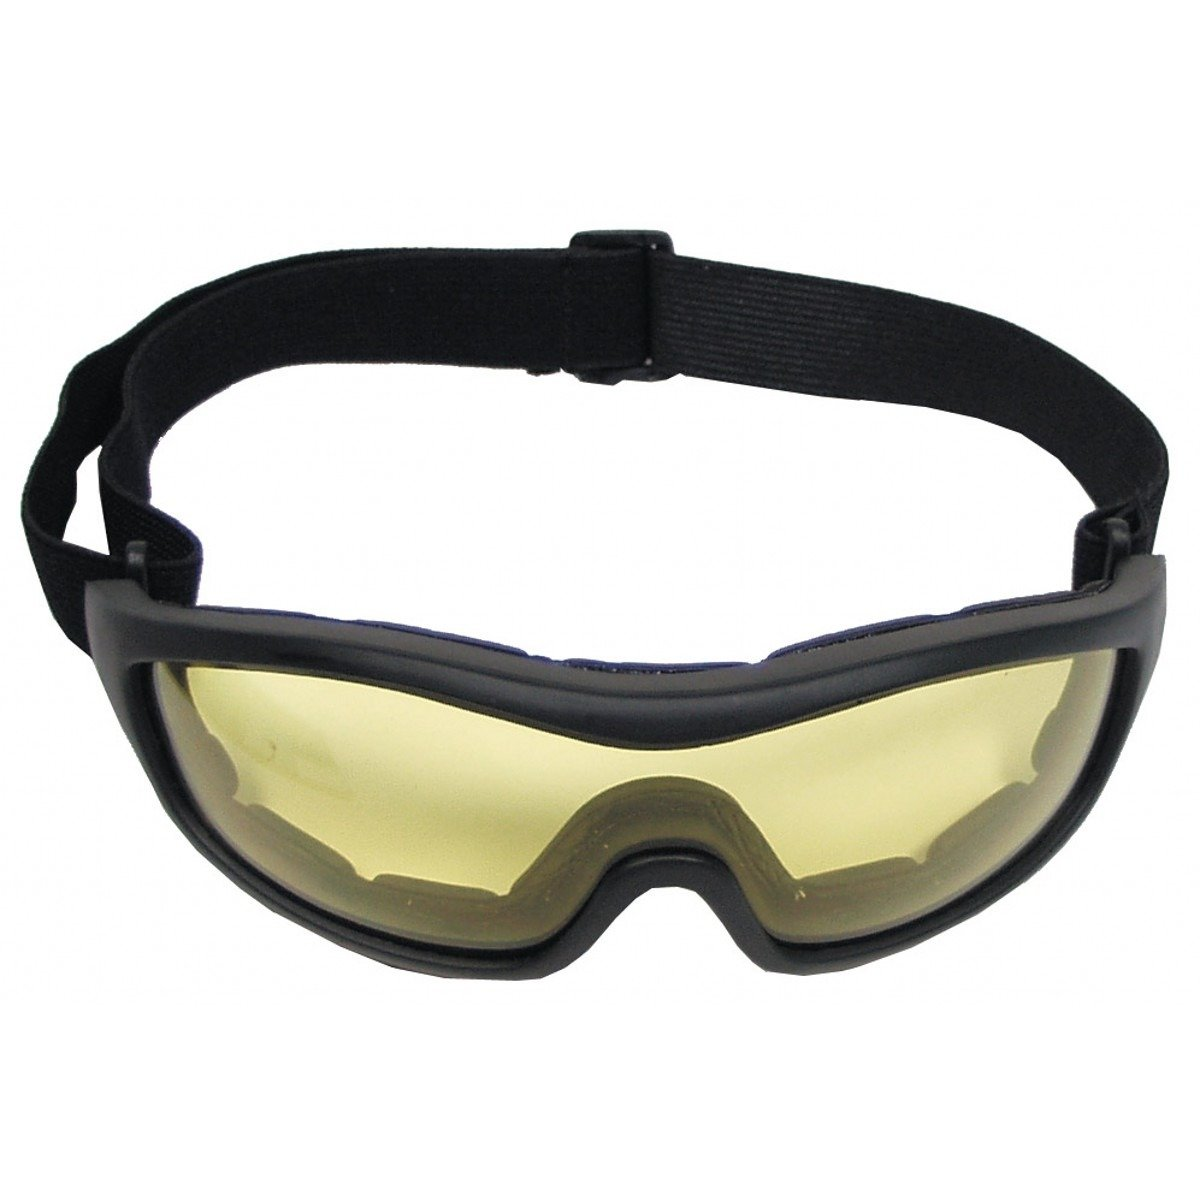 Mfh Goggles 'Mountain' Yellow Lens J7512qX